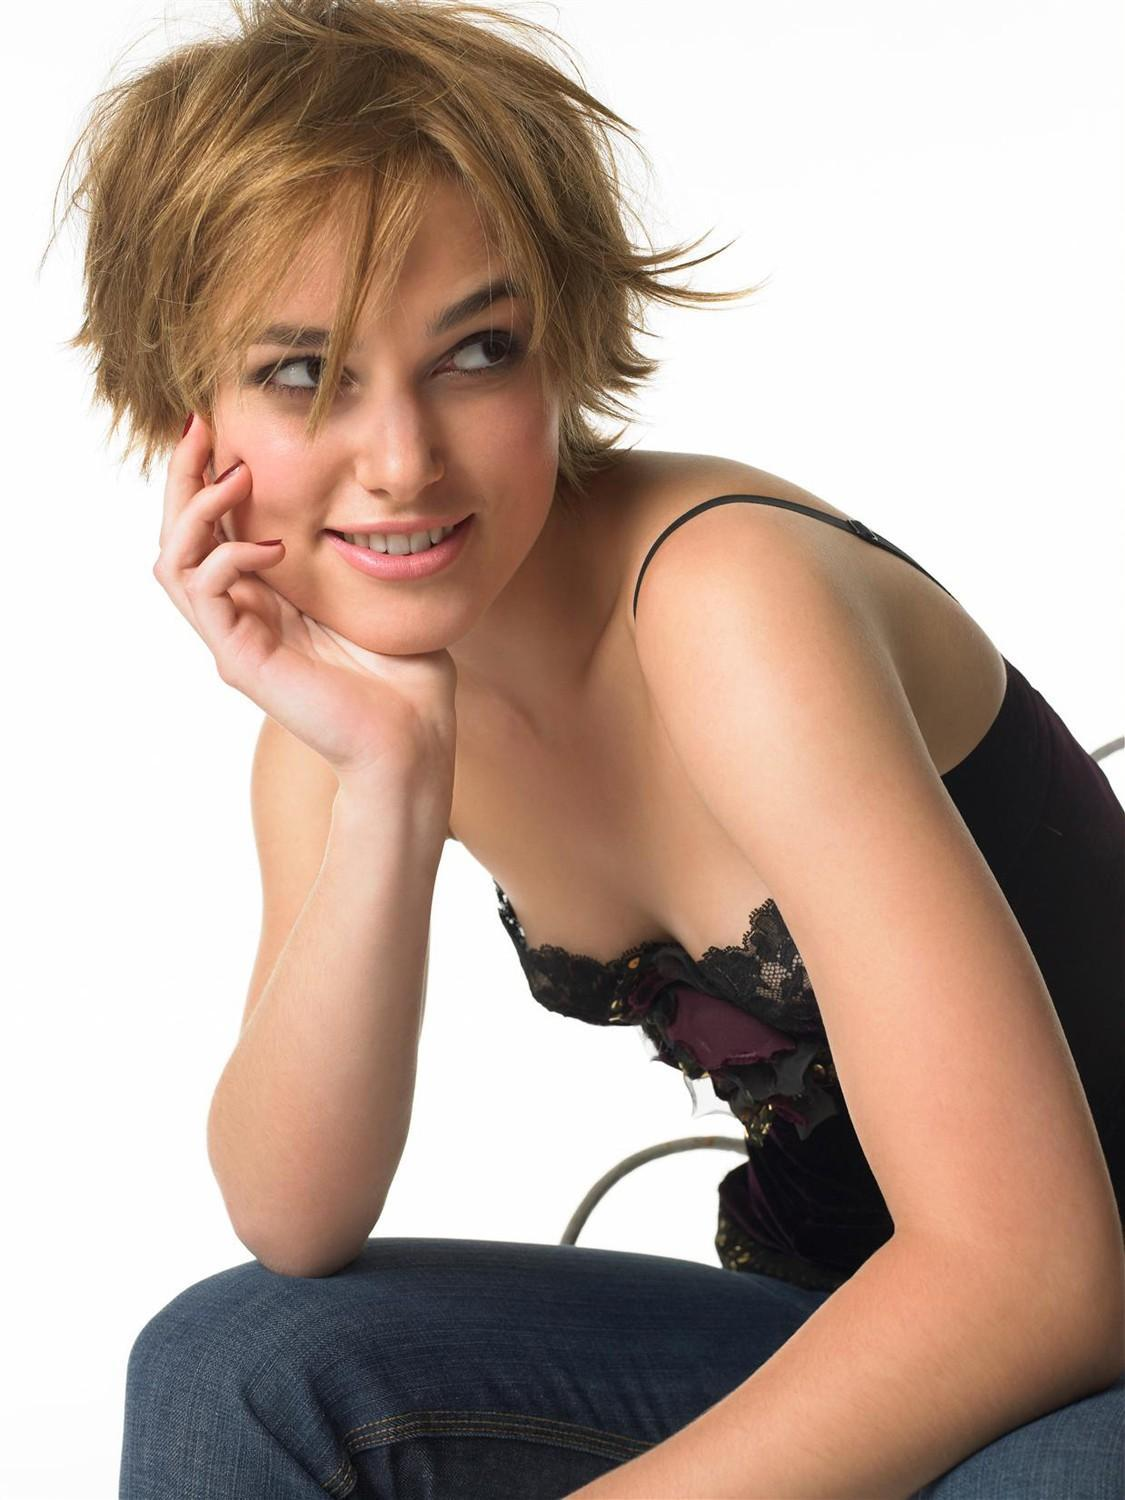 http://cdn23.us3.fansshare.com/celebrity/photos/934_keira-knightley-photoshoots-fashion-shoot-short-hair-hair-1784273319.jpg